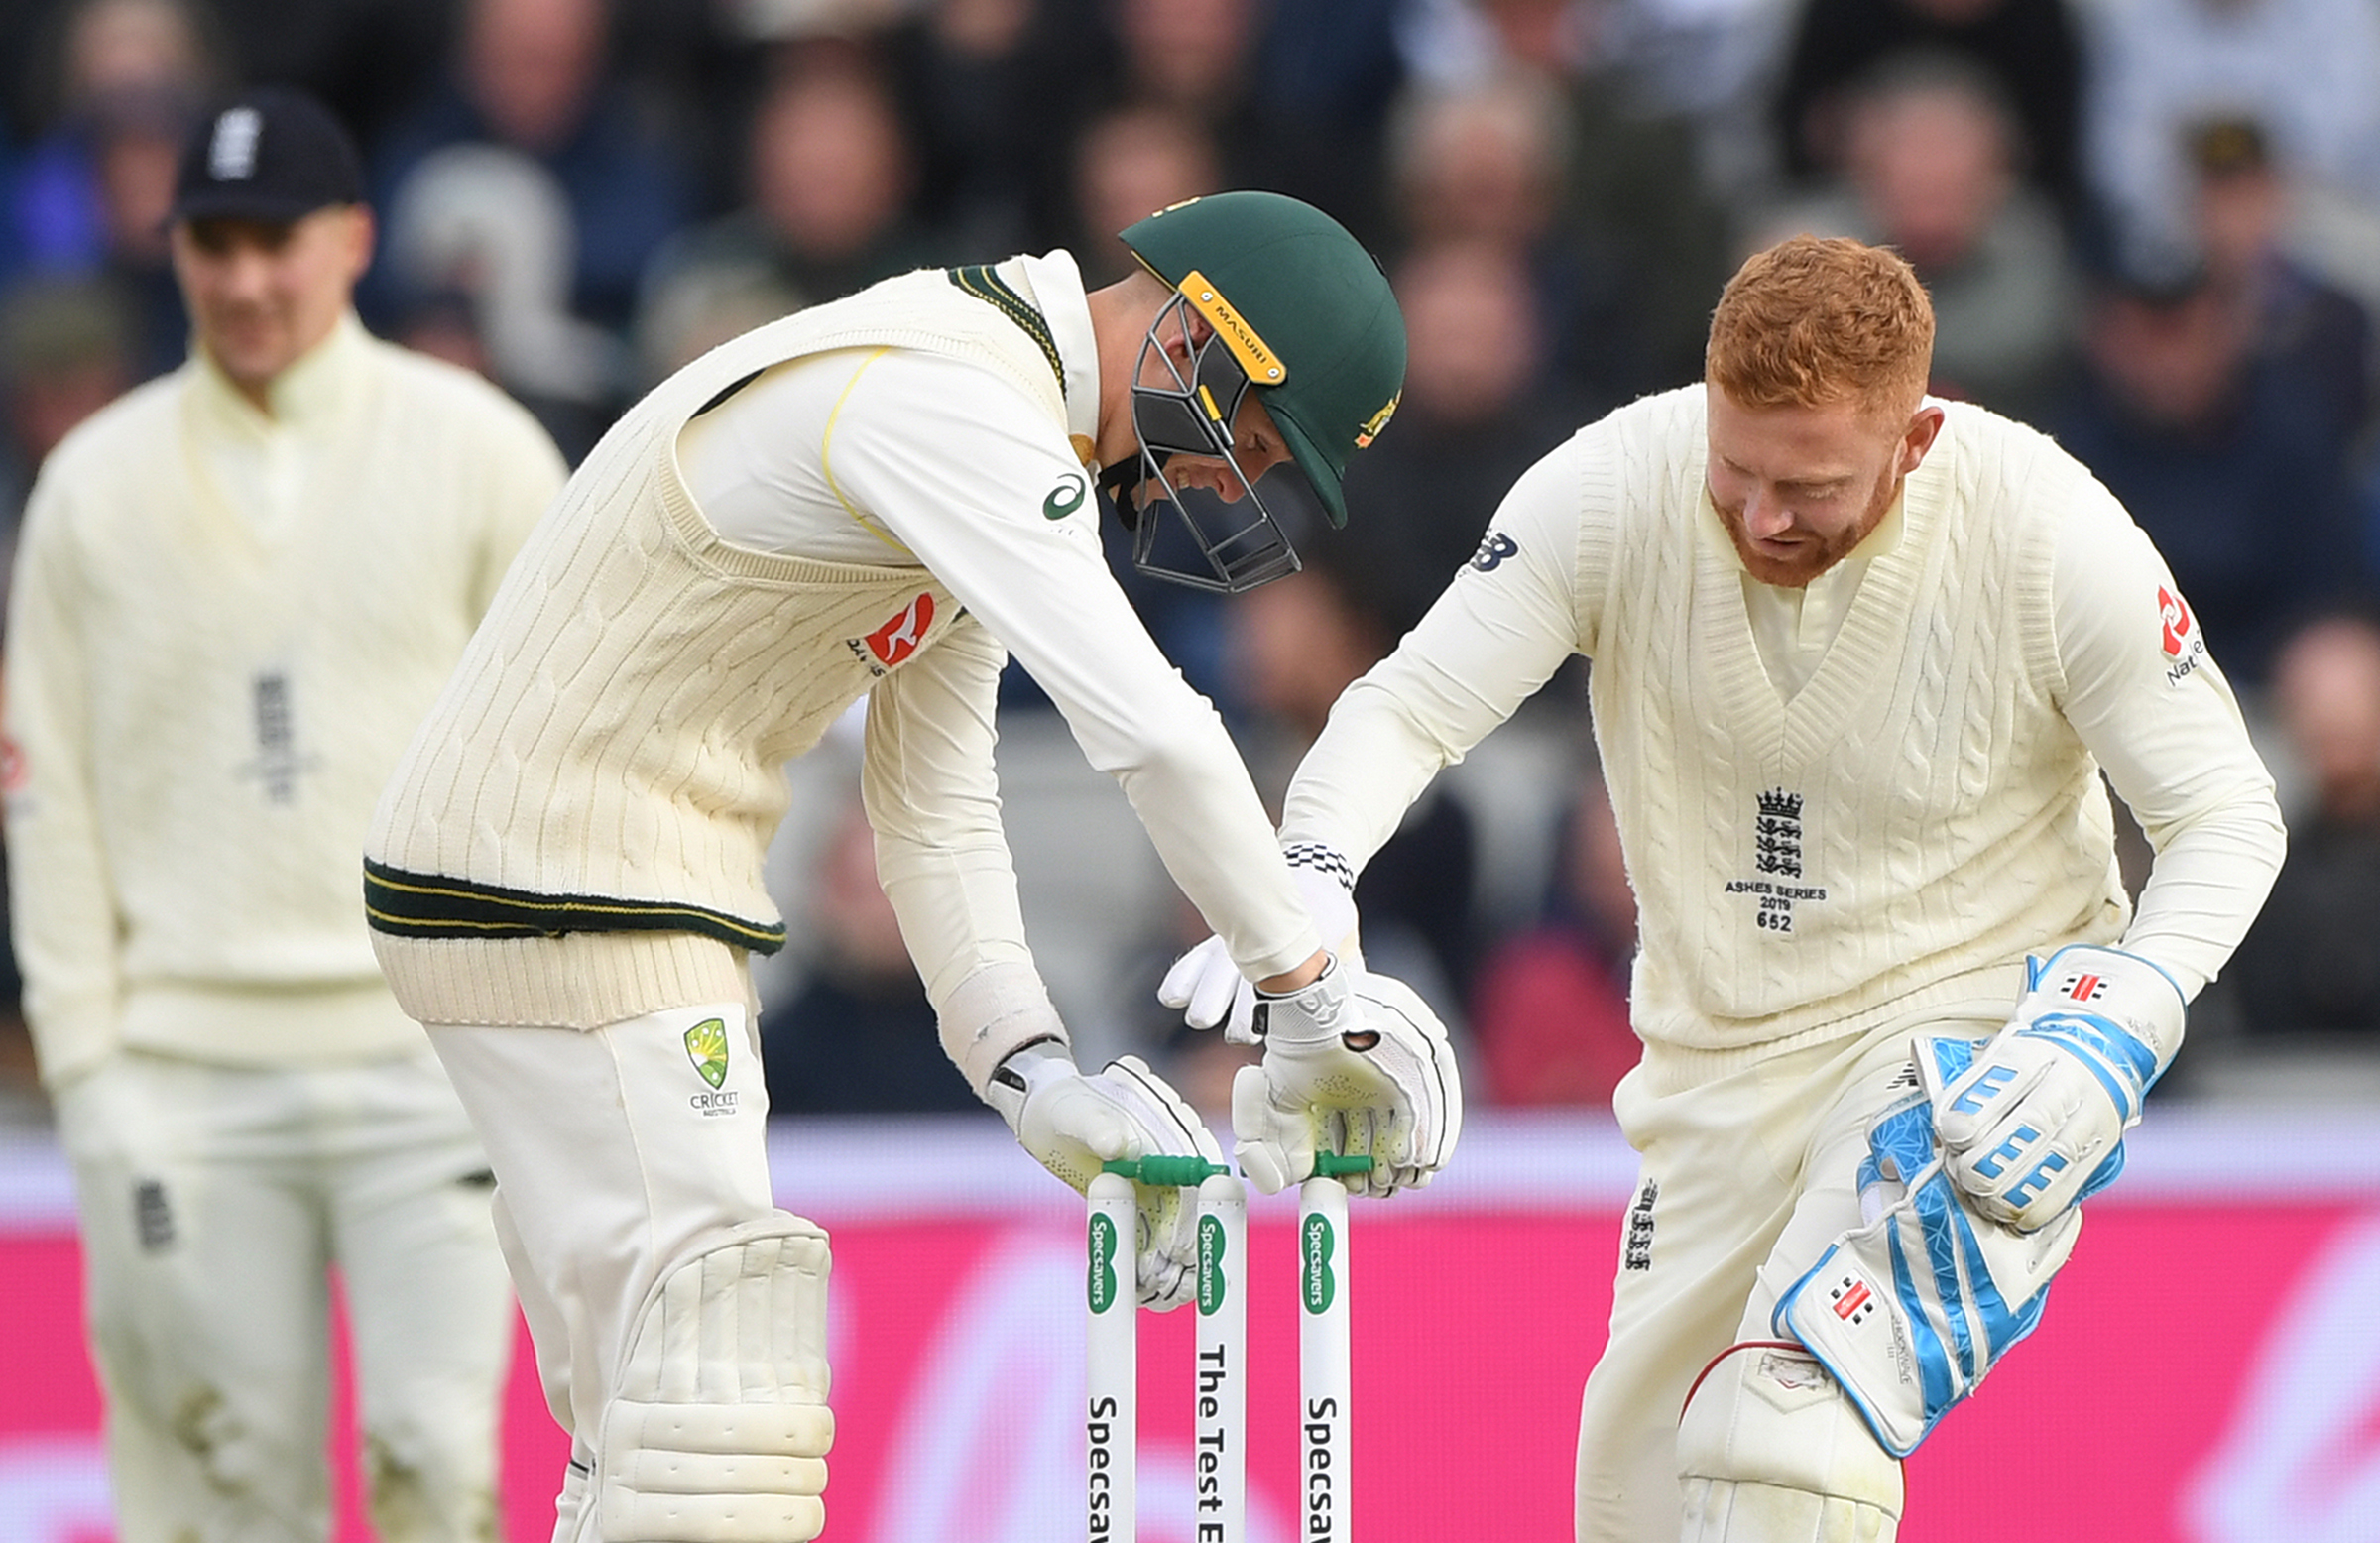 Labuschagne, Jonny Bairstow put the bails back on after wind blew them off // Getty